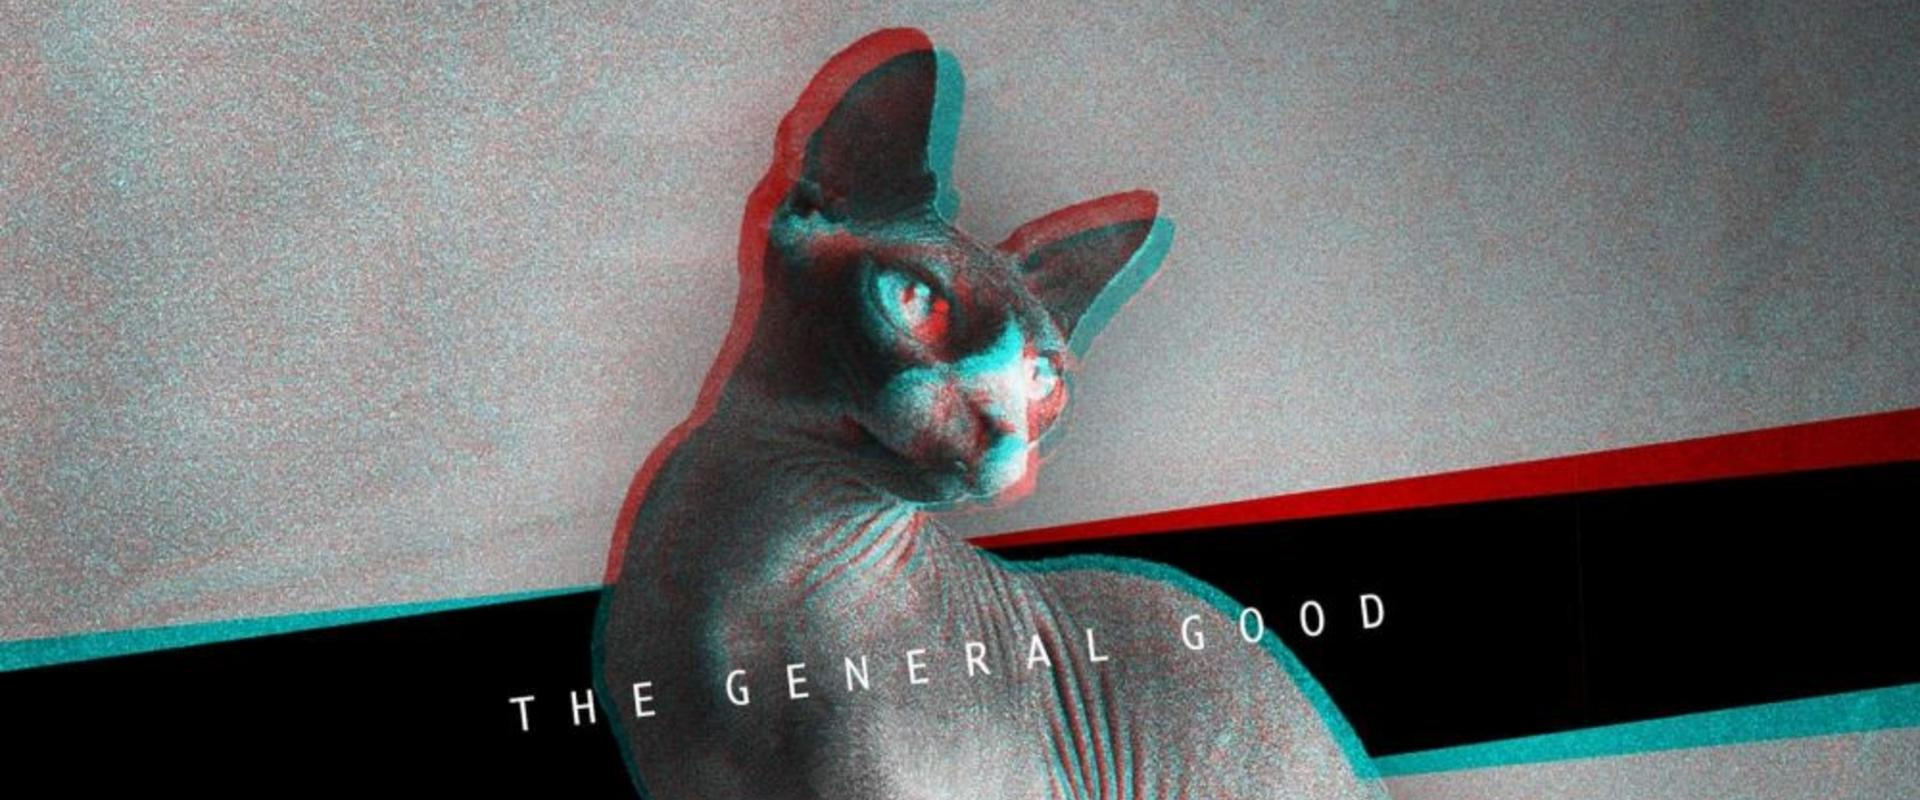 The General Good - The General Good